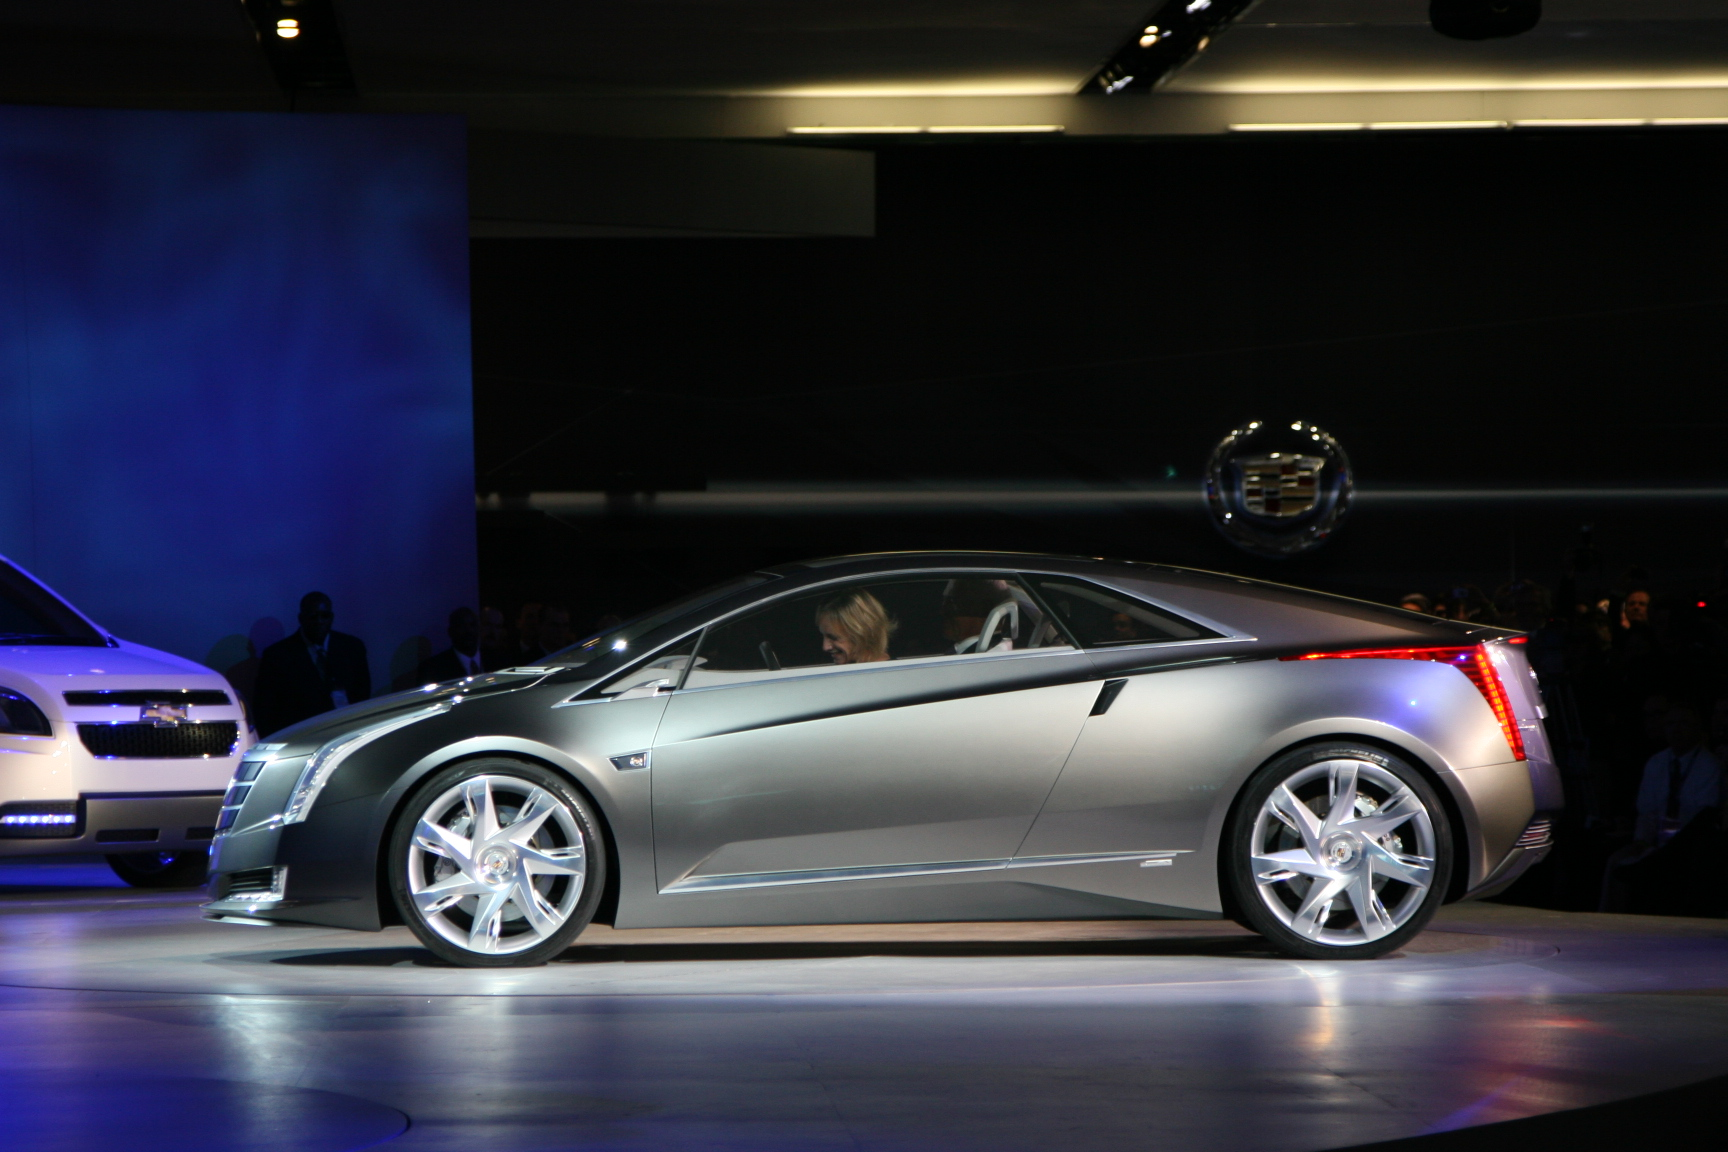 Used Cadillac Cts Coupe >> Cadillac ConverJ Electric Concept » AutoGuide.com News